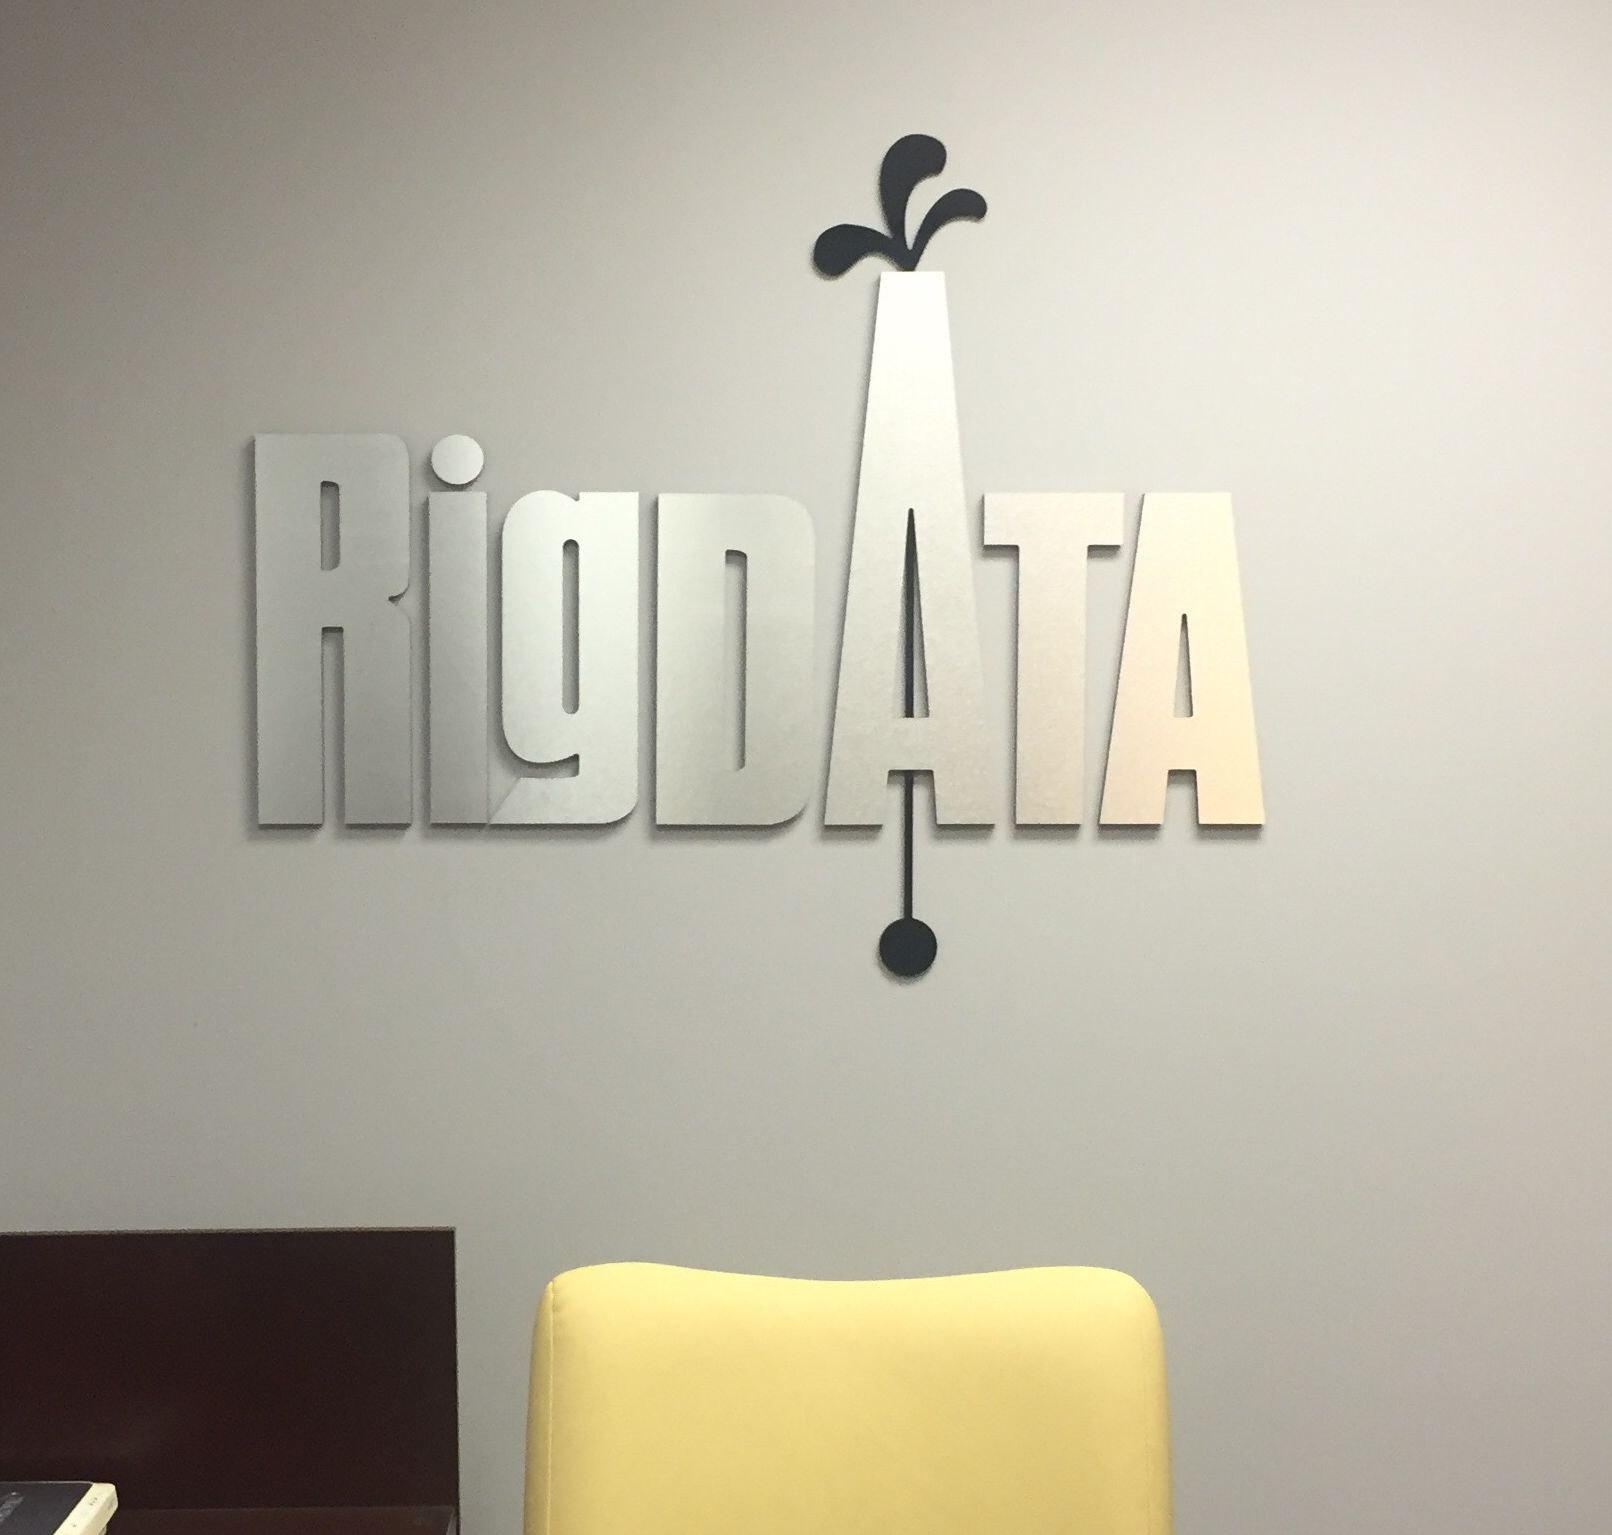 Rigdata - Interior Sign